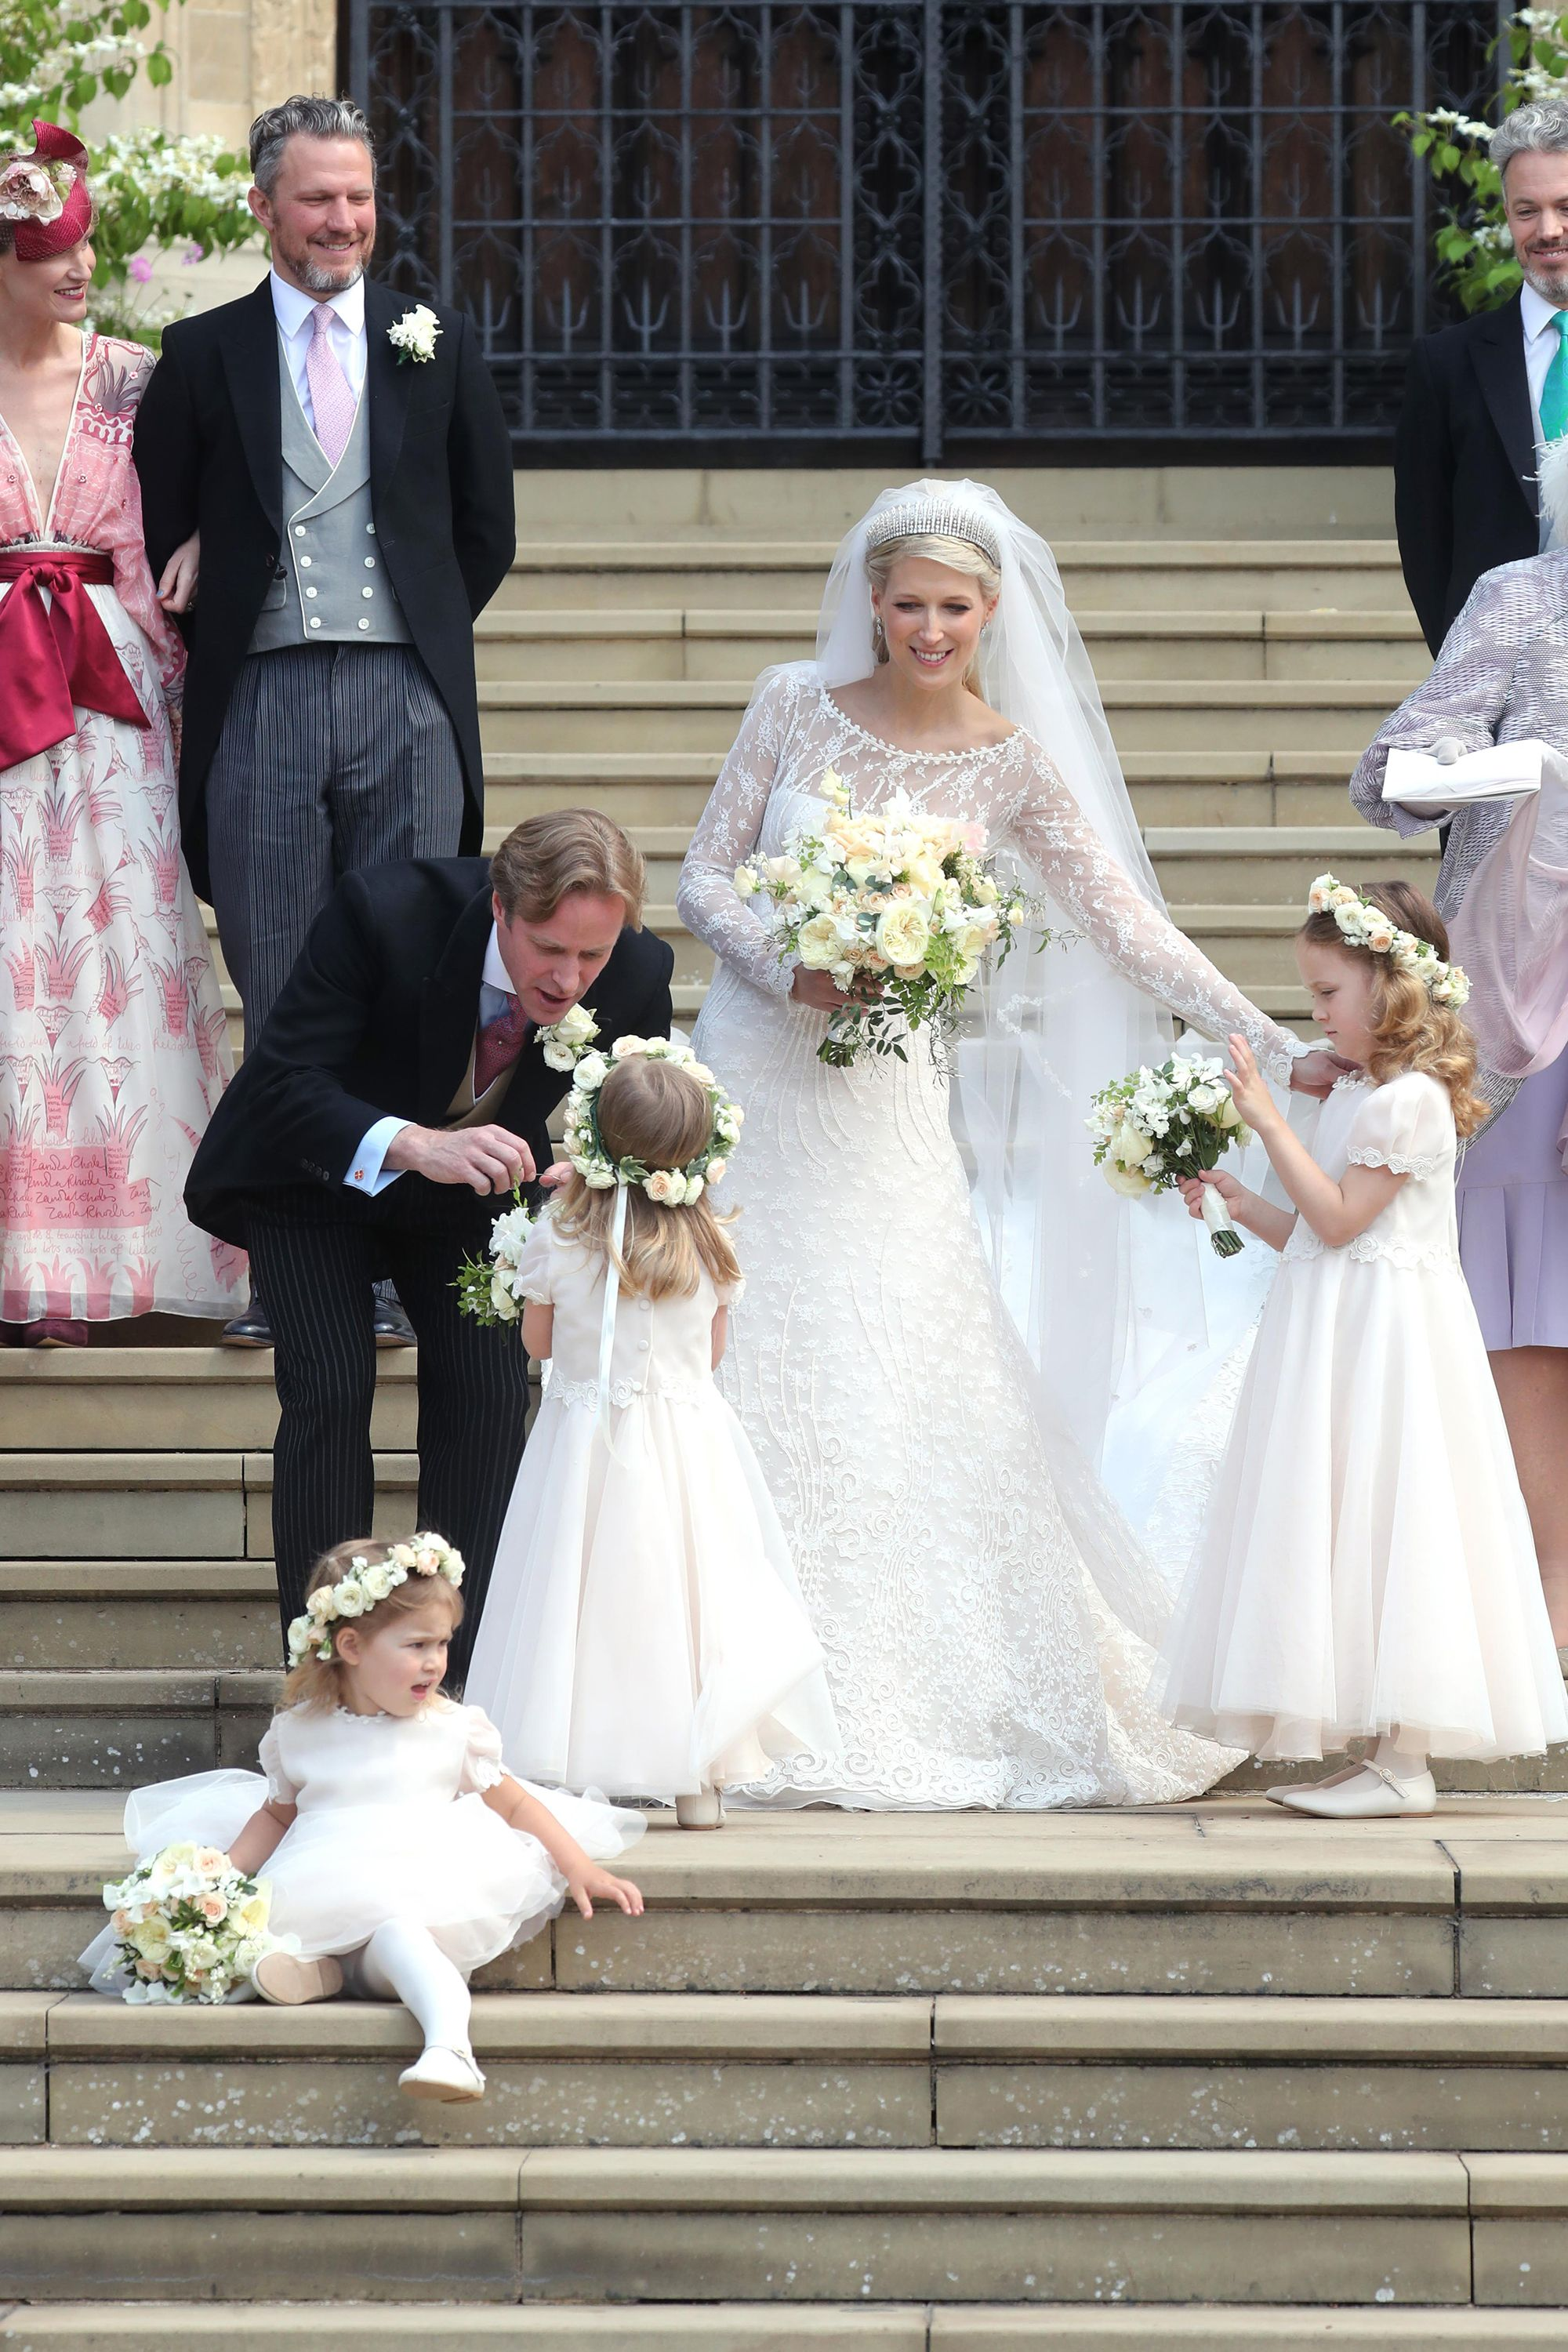 It S Royal Wedding Day Lady Gabriella Windsor And Thomas Kingston Marry At St George S Chapel Royal Brides Wedding Dresses Royal Weddings